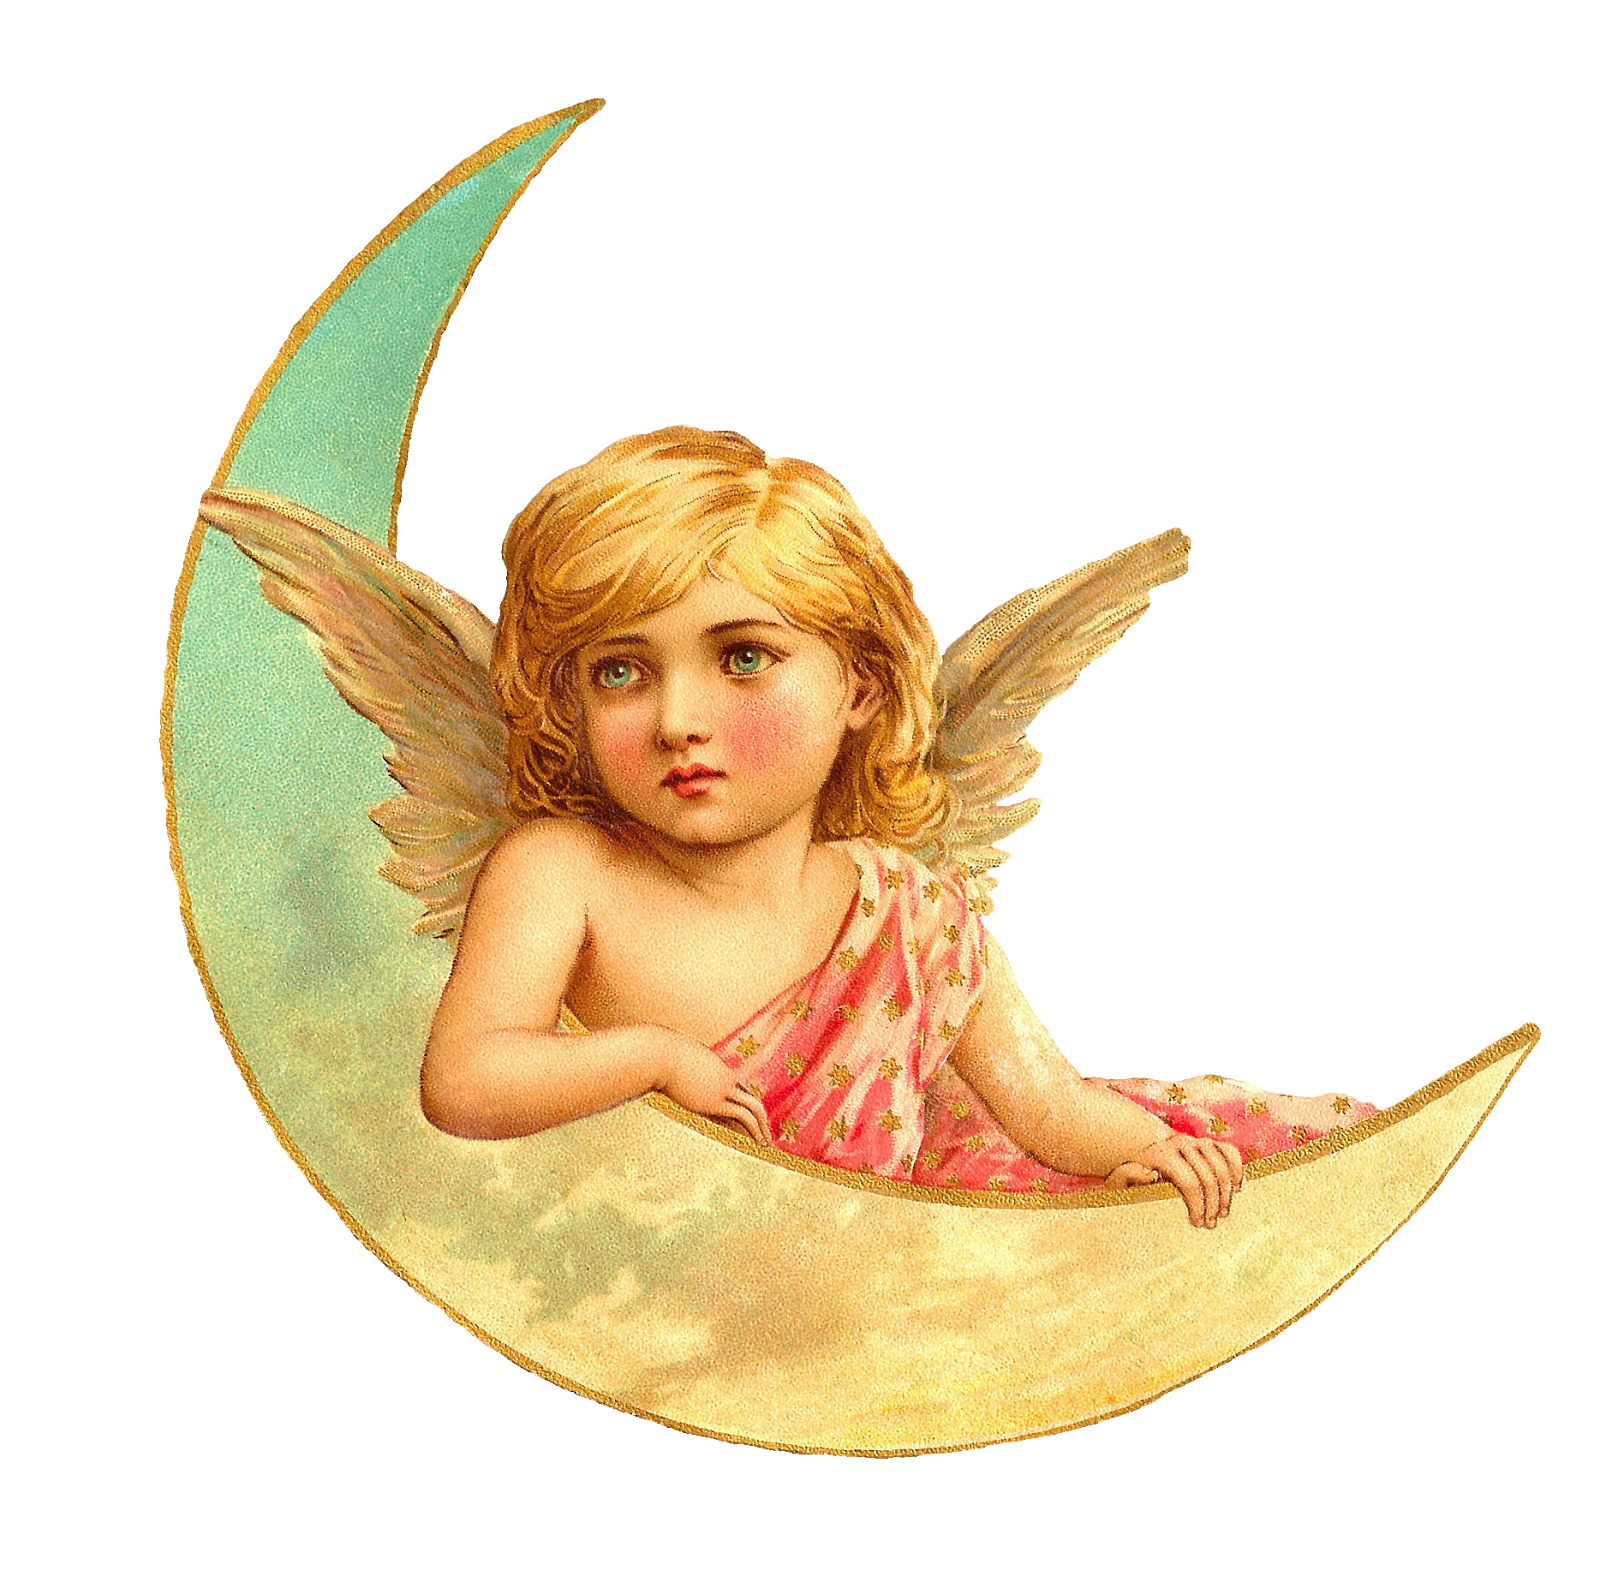 Angel clipart victorian angel #12